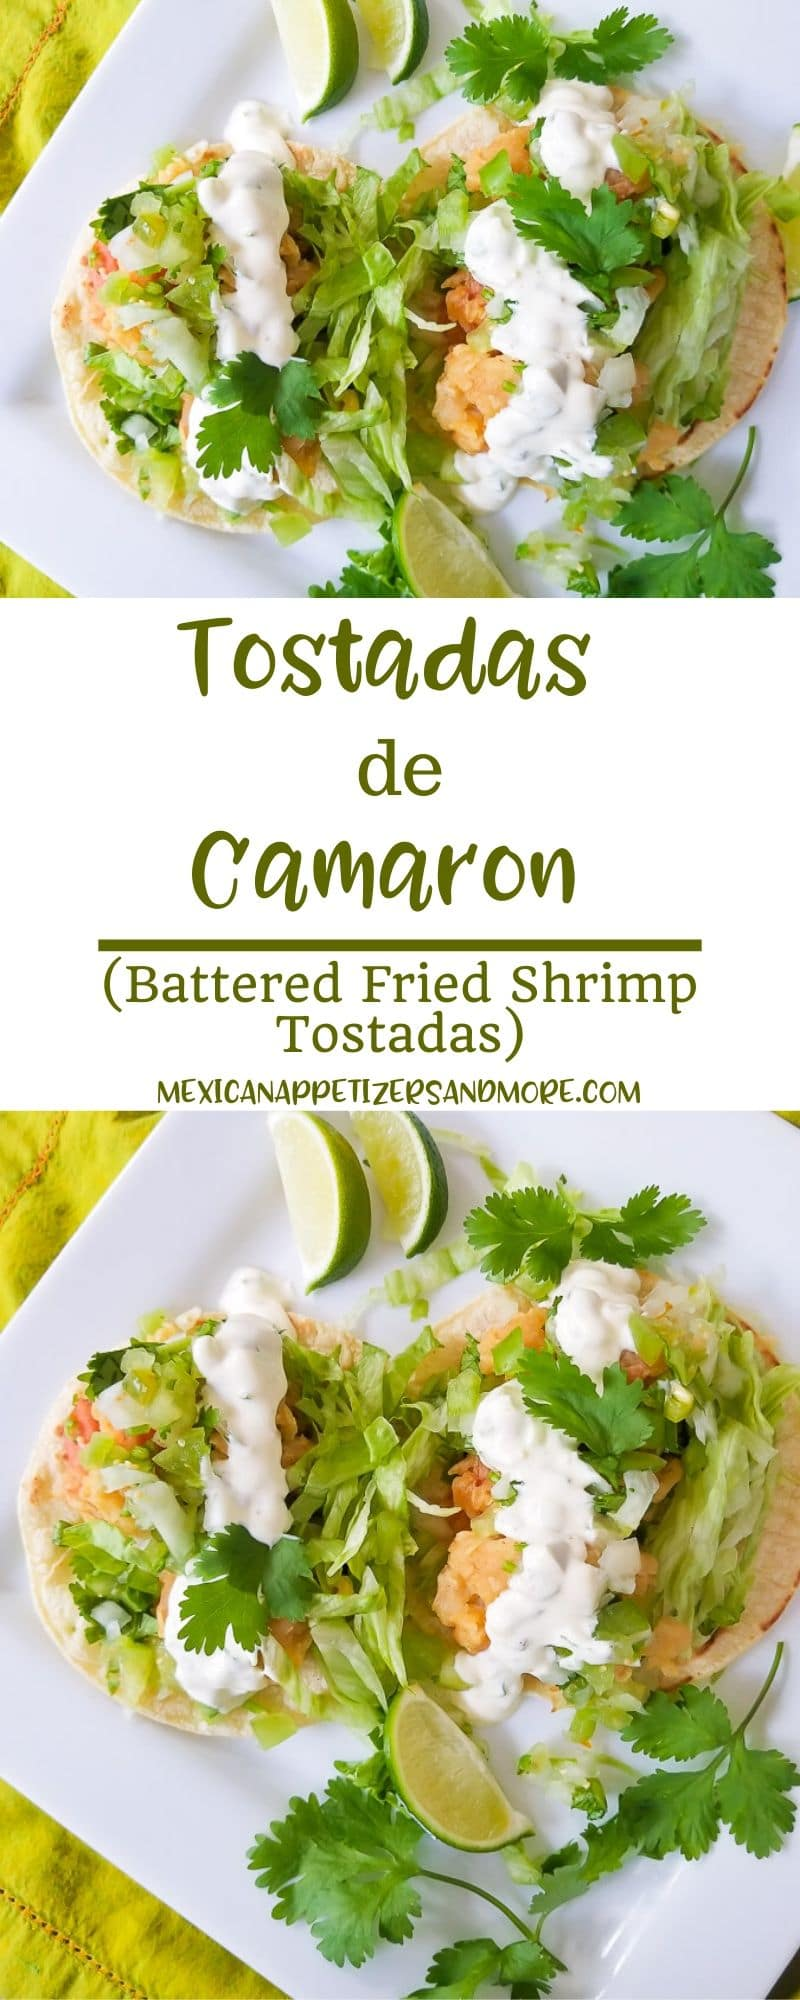 These Tostadas de Camaron (Battered Fried Shrimp Tostadas) are hyper delicious and ultra satisfying for any tostada craving! Topped with shredded lettuce and chopped cilantro.  Then finished off with a delectable Jalapeño Tartar Sauce, hyper tasty Tomatillo Pico de Gallo and lime juice! #tostadasdecamaron #shrimpstostadasmexican #shrimptostadaseasy